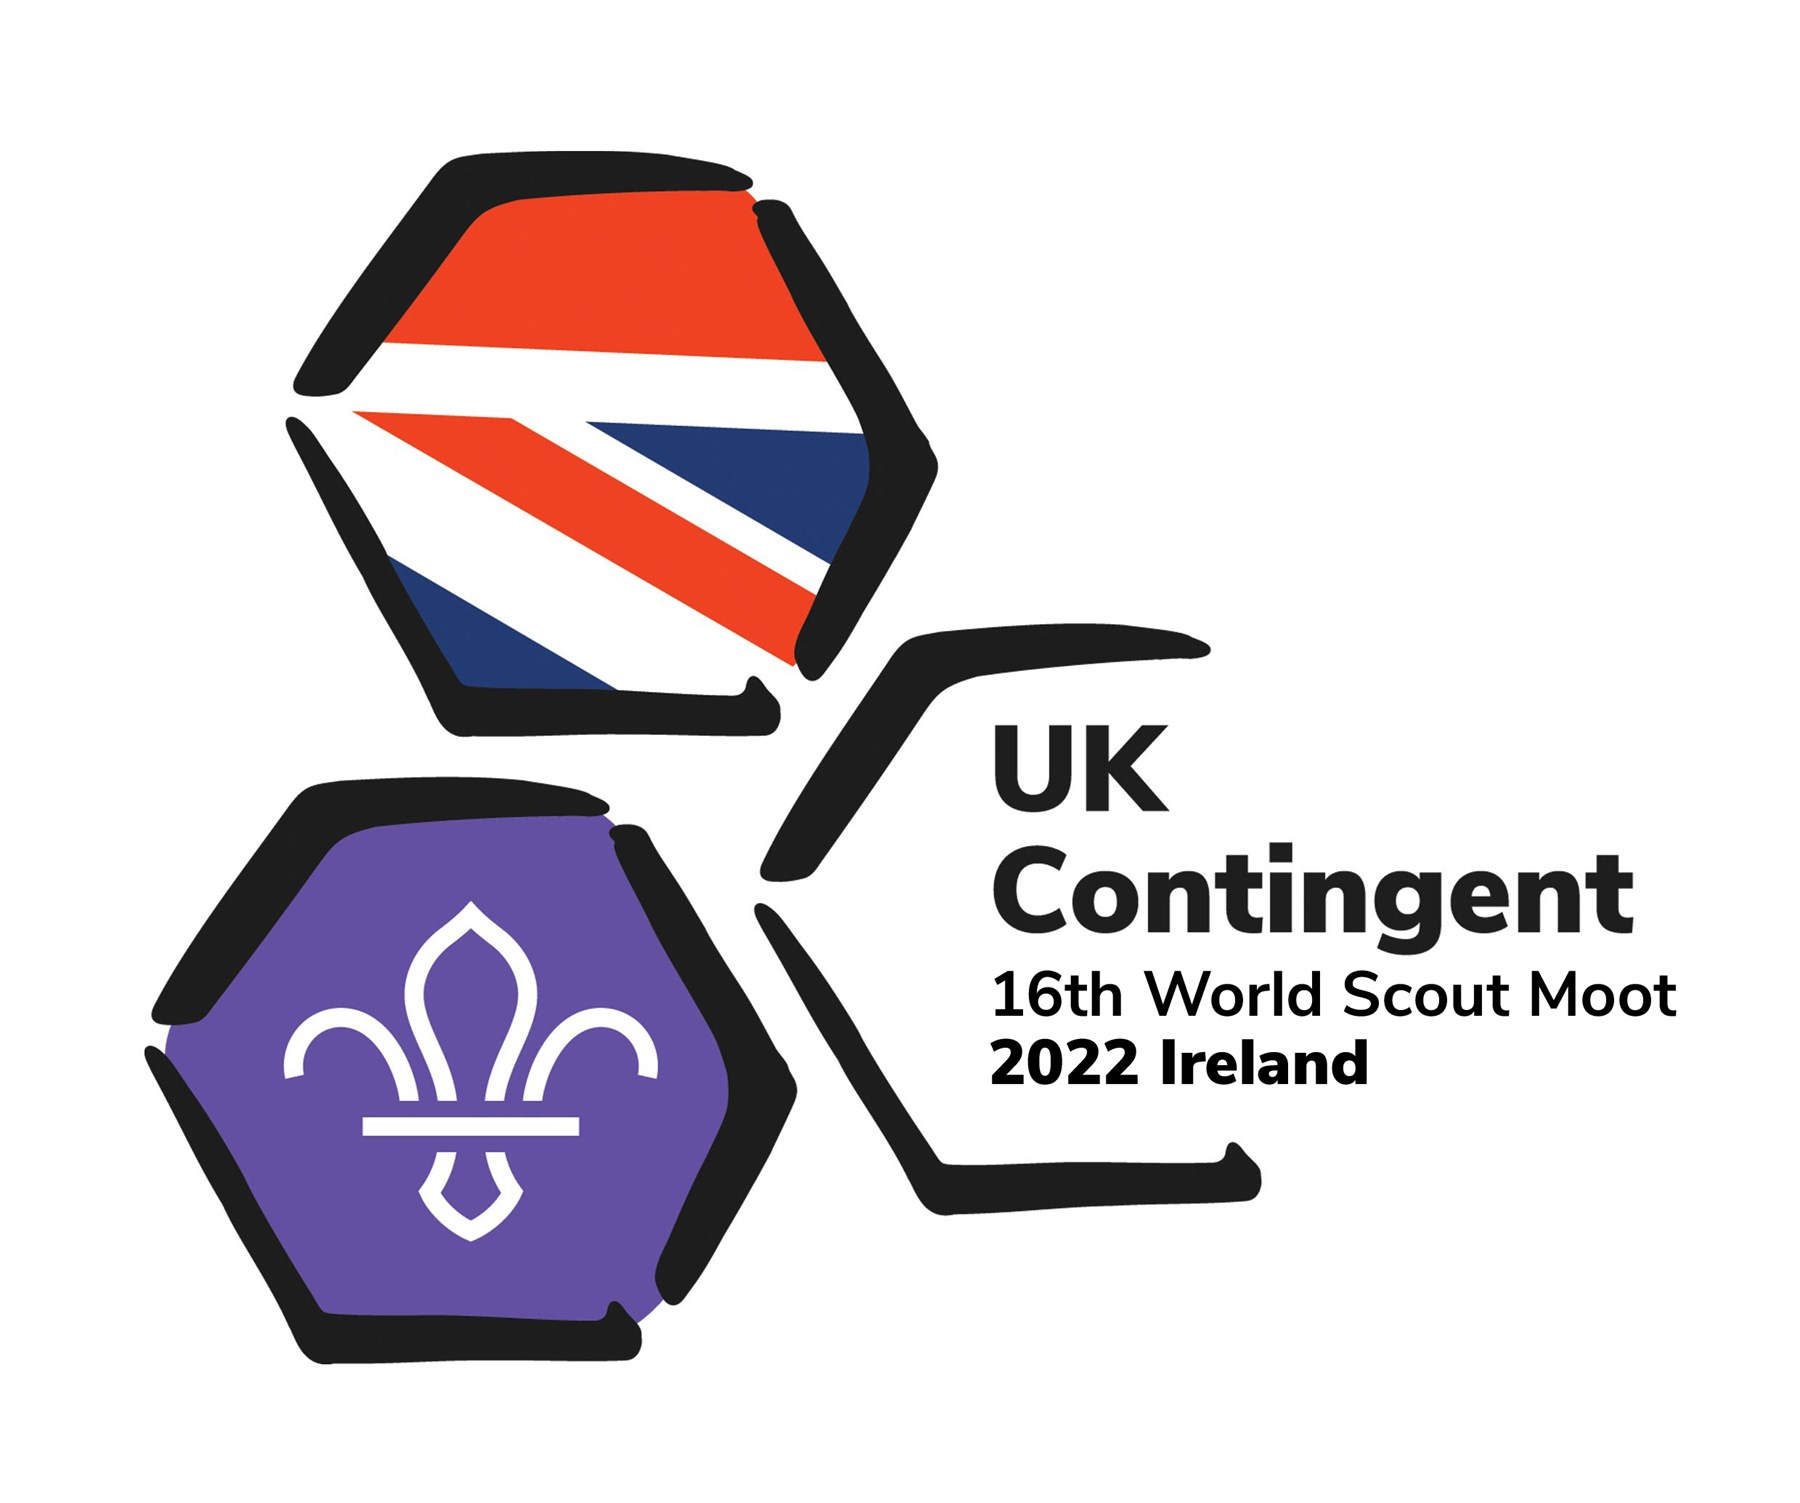 UK Contingent 16th World Scout Moot